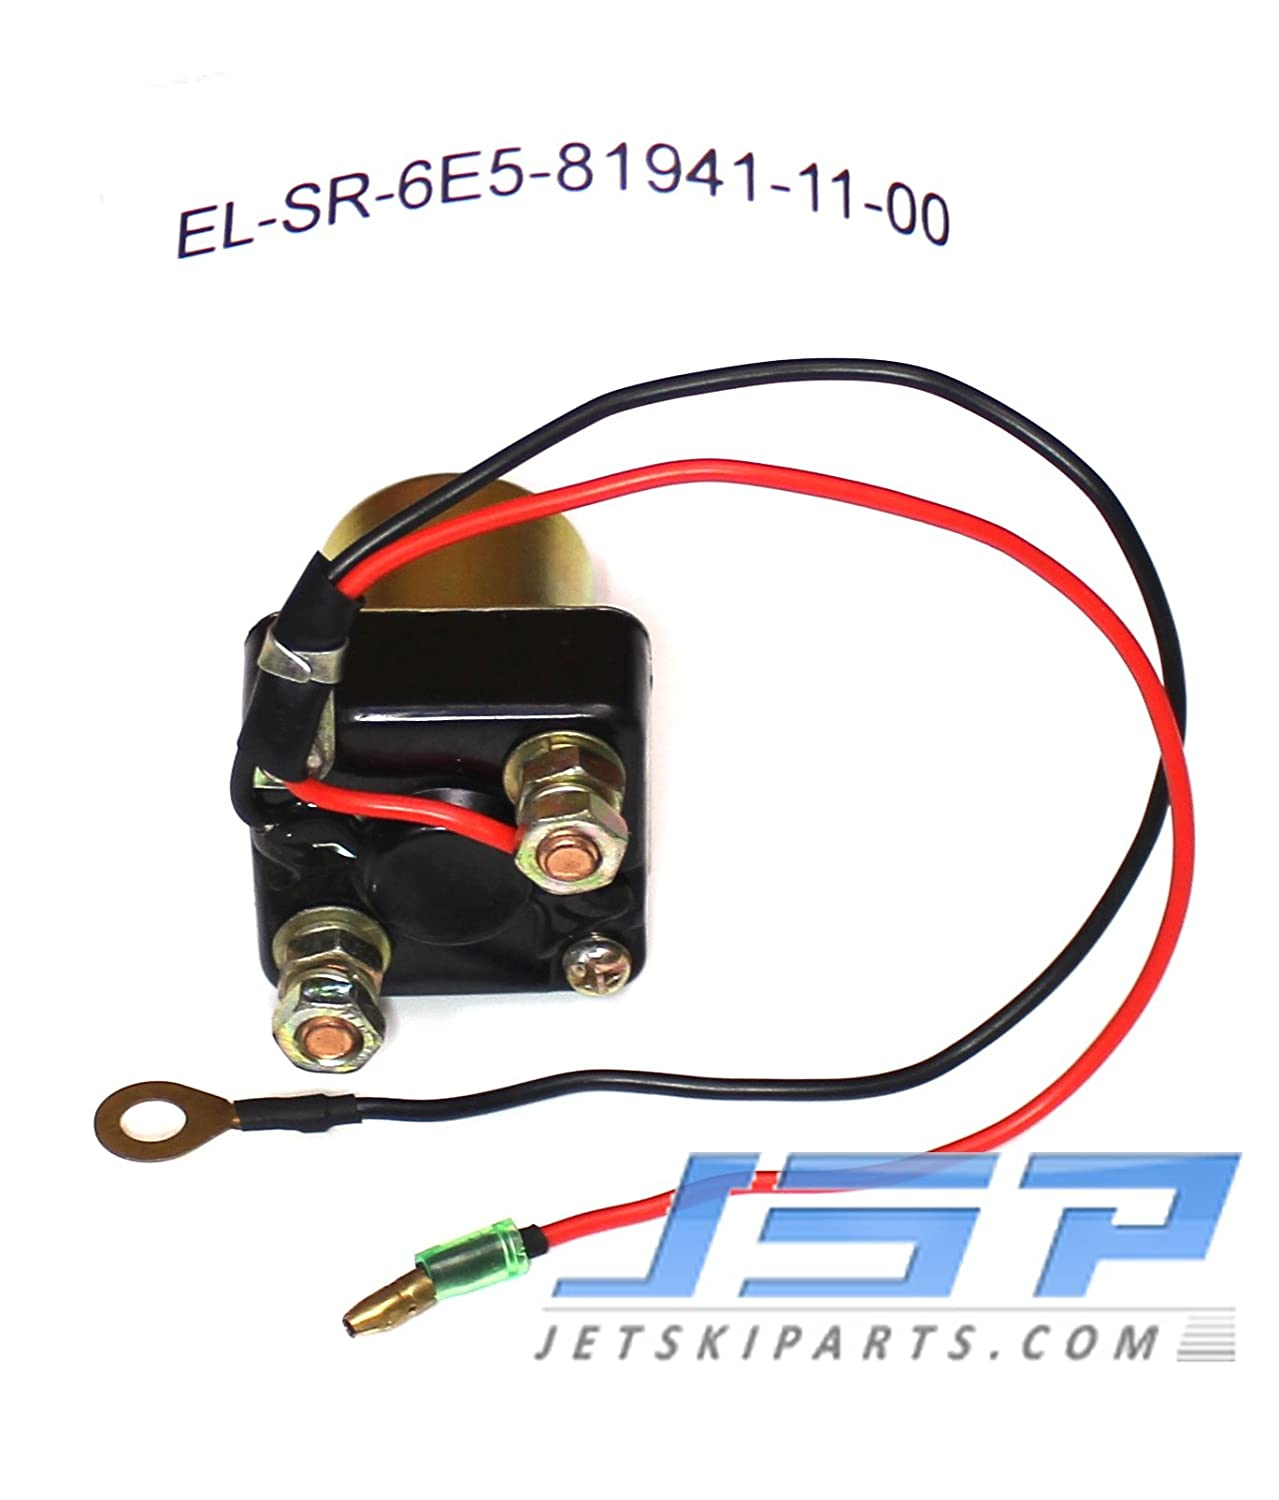 Yamaha Outboard Trim Relay Solenoid 6e5 81941 11 00 Boat V 150 Wiring 115 135 175 200 Hp Sports Outdoors